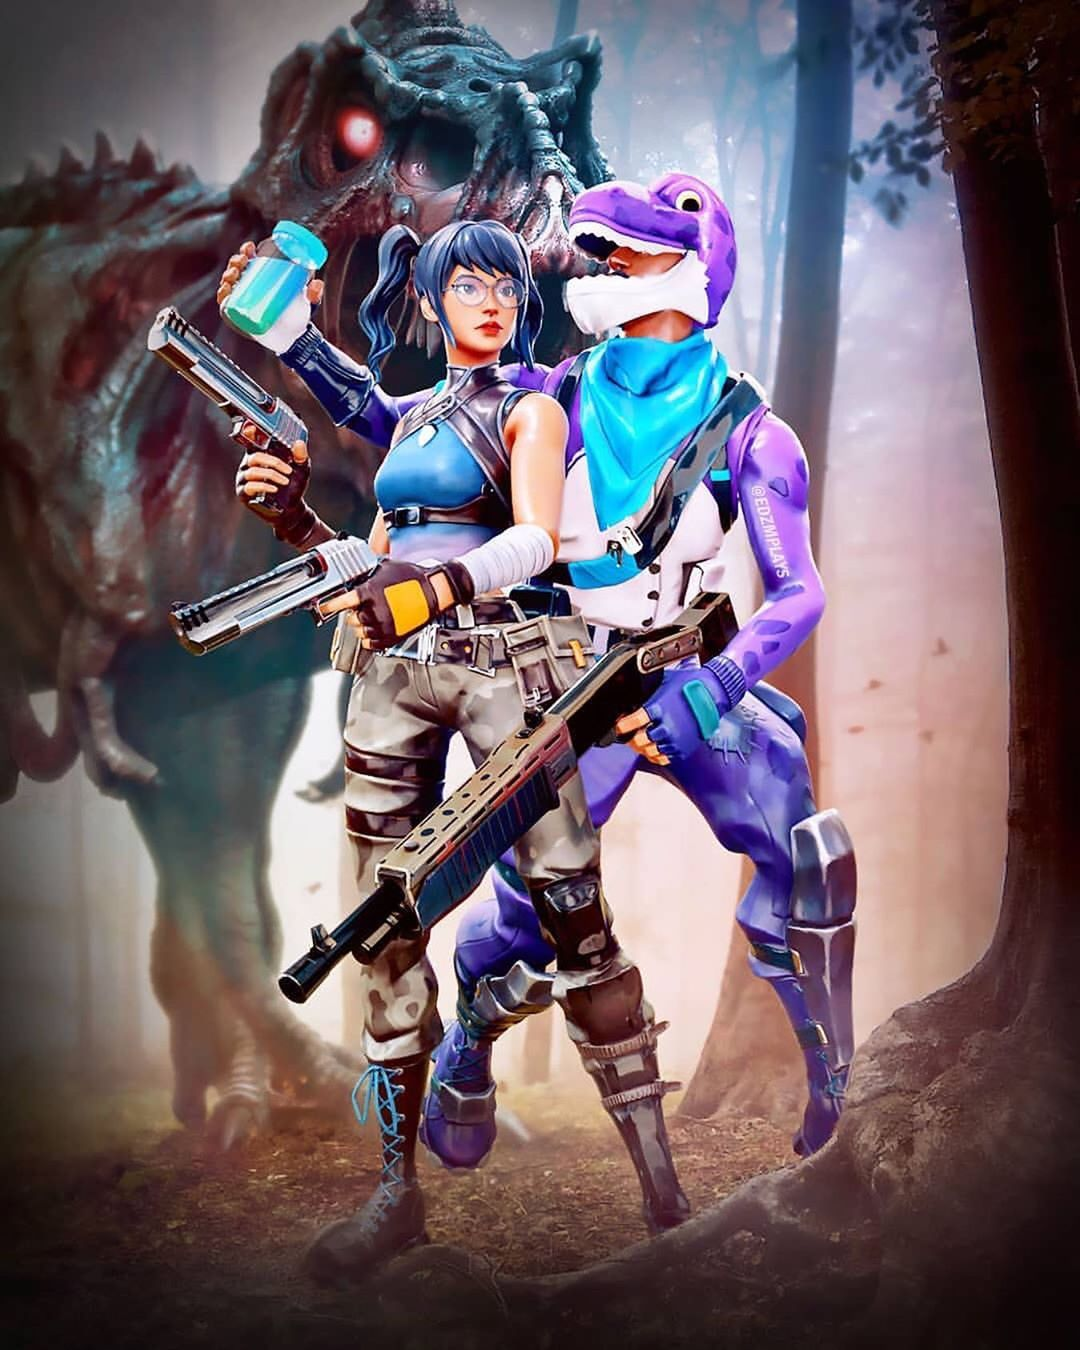 Senpai Reanimity On Instagram Dino Profile Picture Edzmplays Follow R In 2020 Epic Games Fortnite Gaming Wallpapers Epic Games